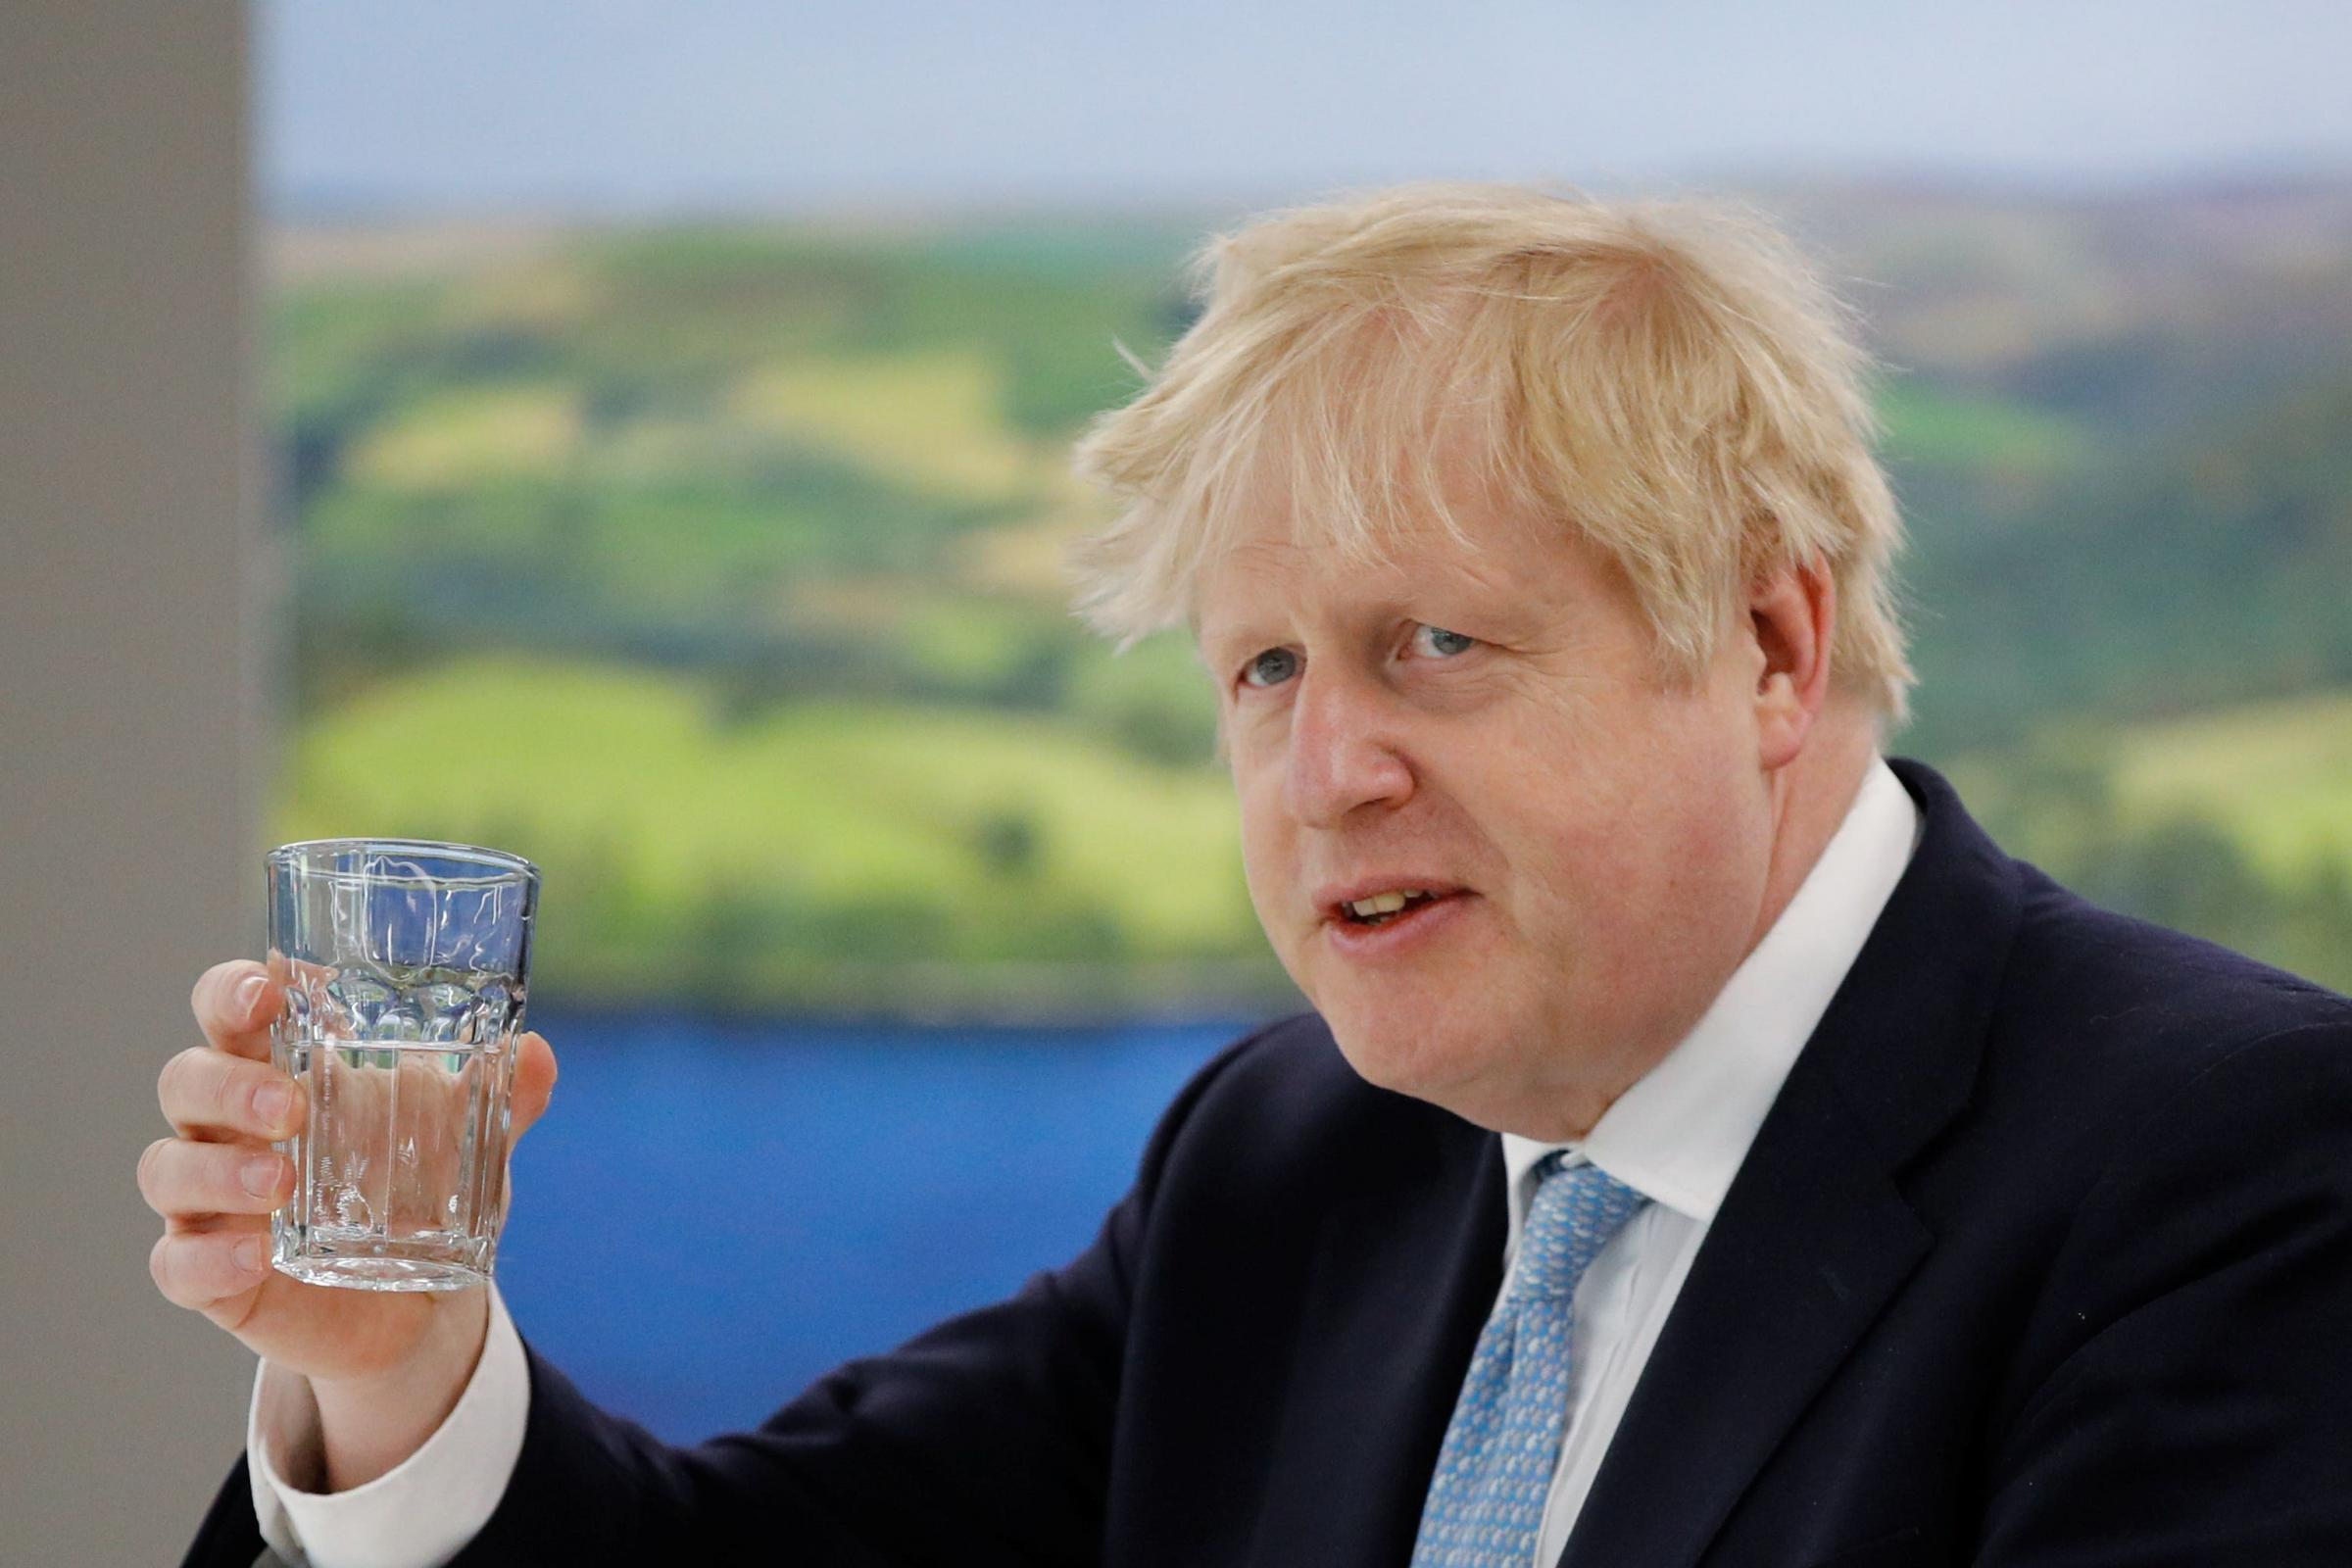 Queen's Speech: Boris plans to change voting rules condemned as 'Tory suppression'